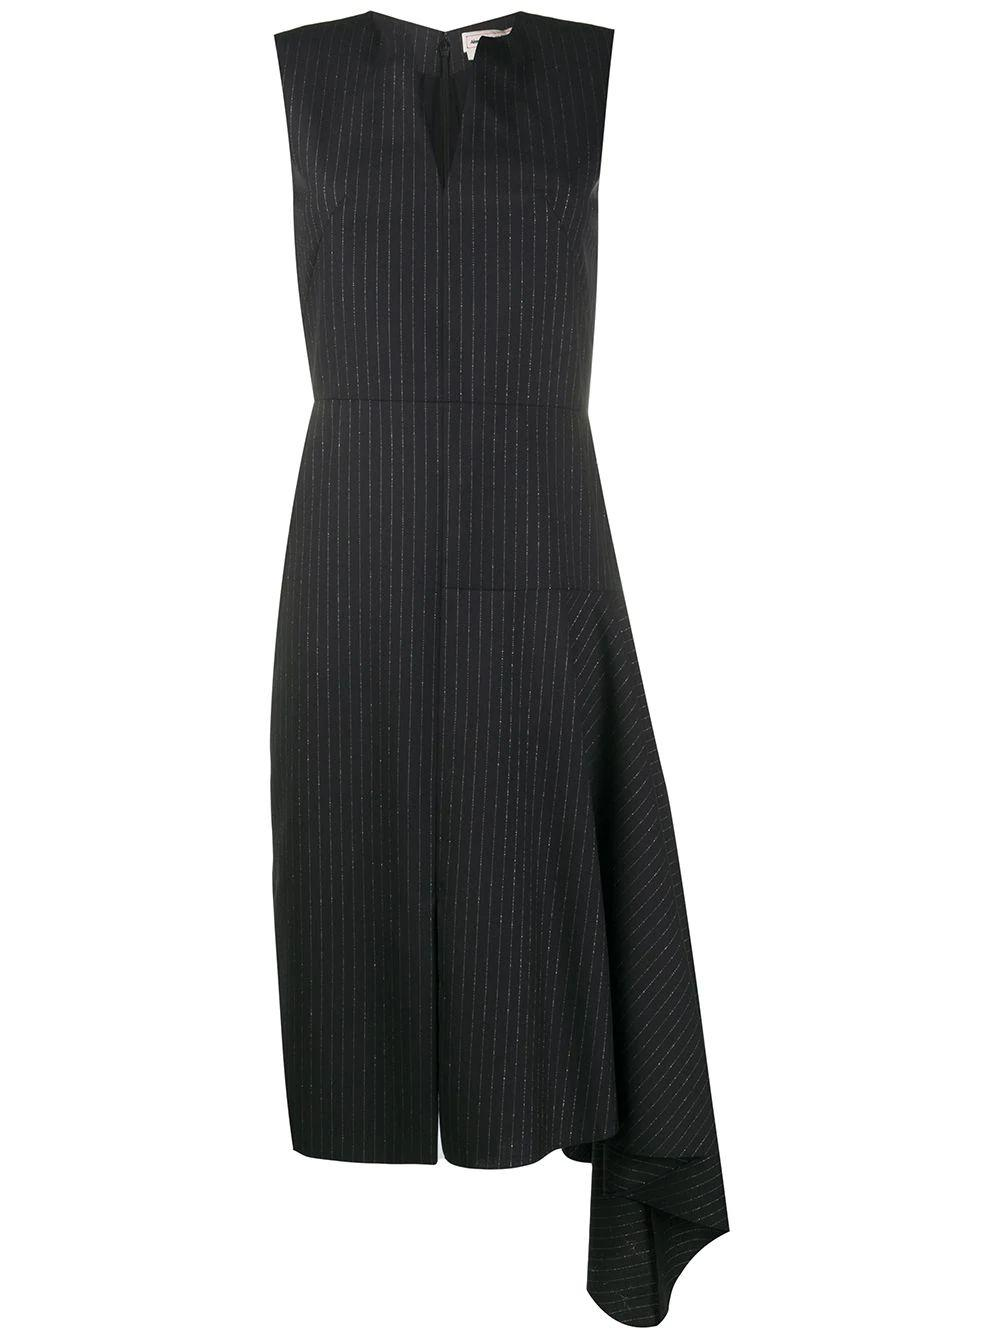 Pinstripe Dress With Side Drape Item # 632117QJABF